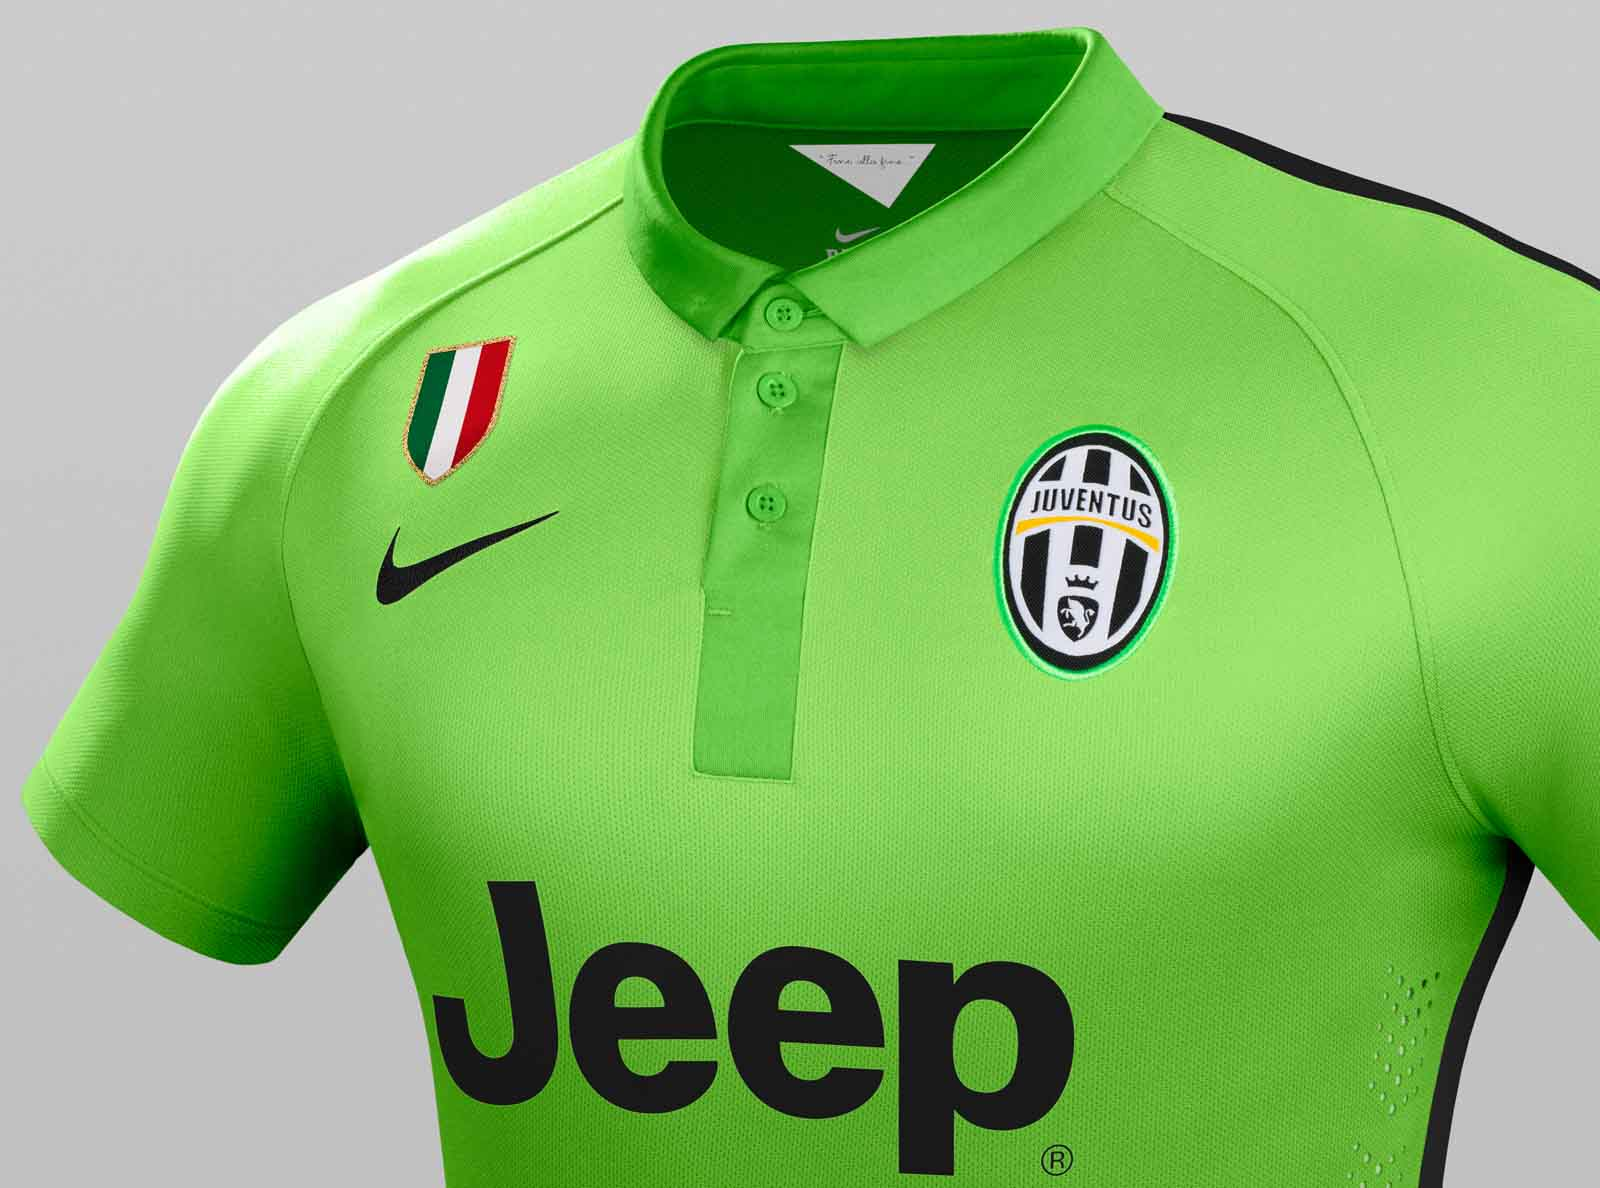 7b6c1d140d Footy News  NEW NIKE JUVENTUS 14-15 KITS